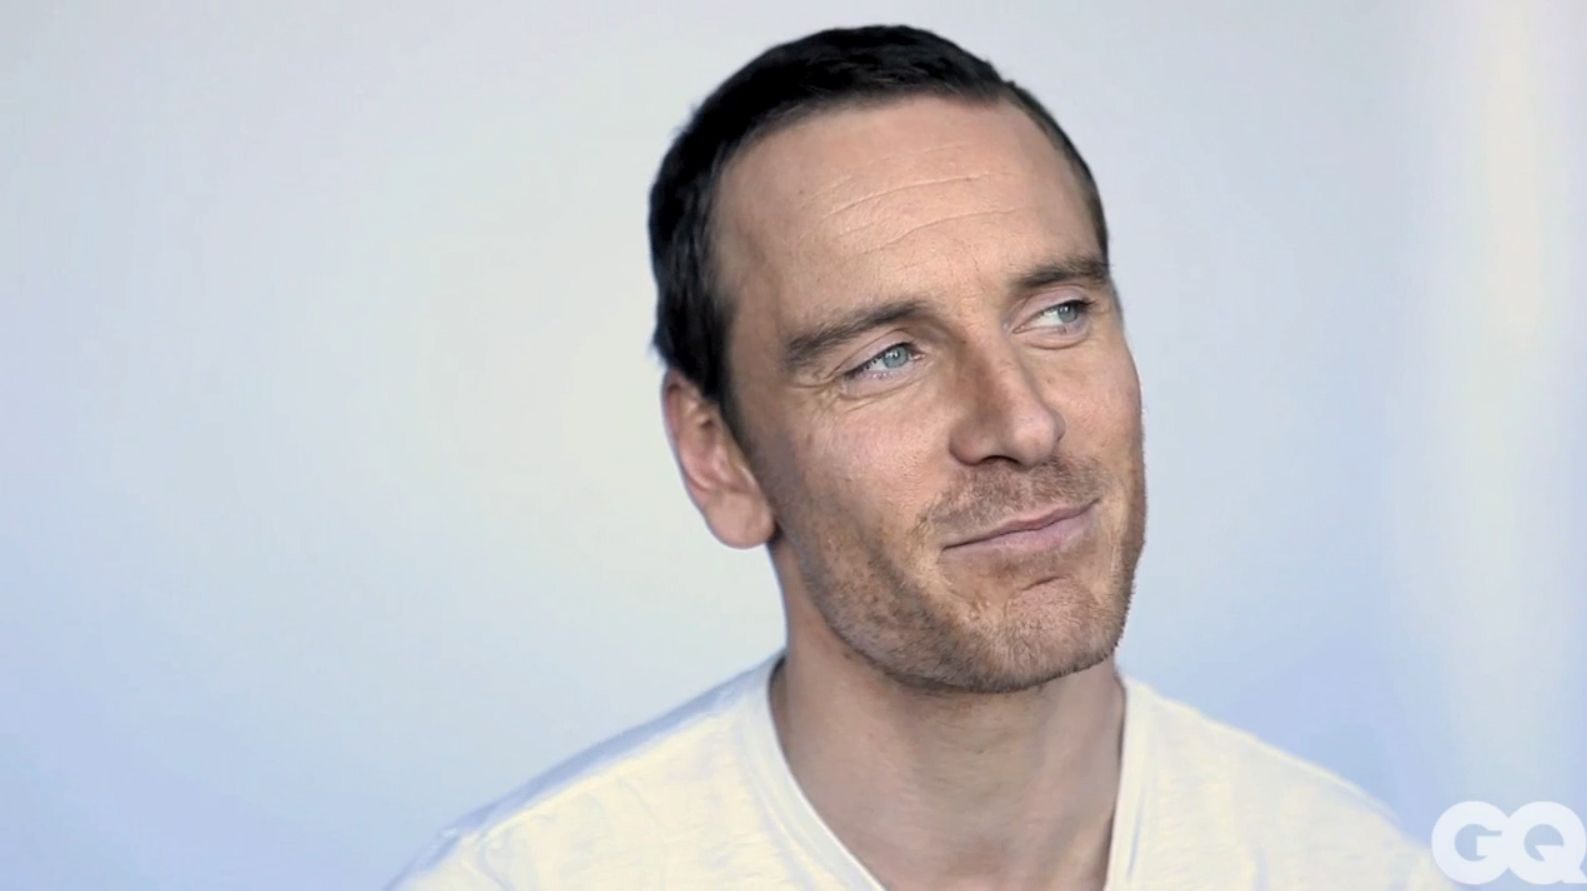 But though he has a cheeky twinkle in his eye in person, Fassbender is also engaging, open, thoughtful and quick to laugh - passionate about his job but aware of its oddities. - quote from interview [total film UK]